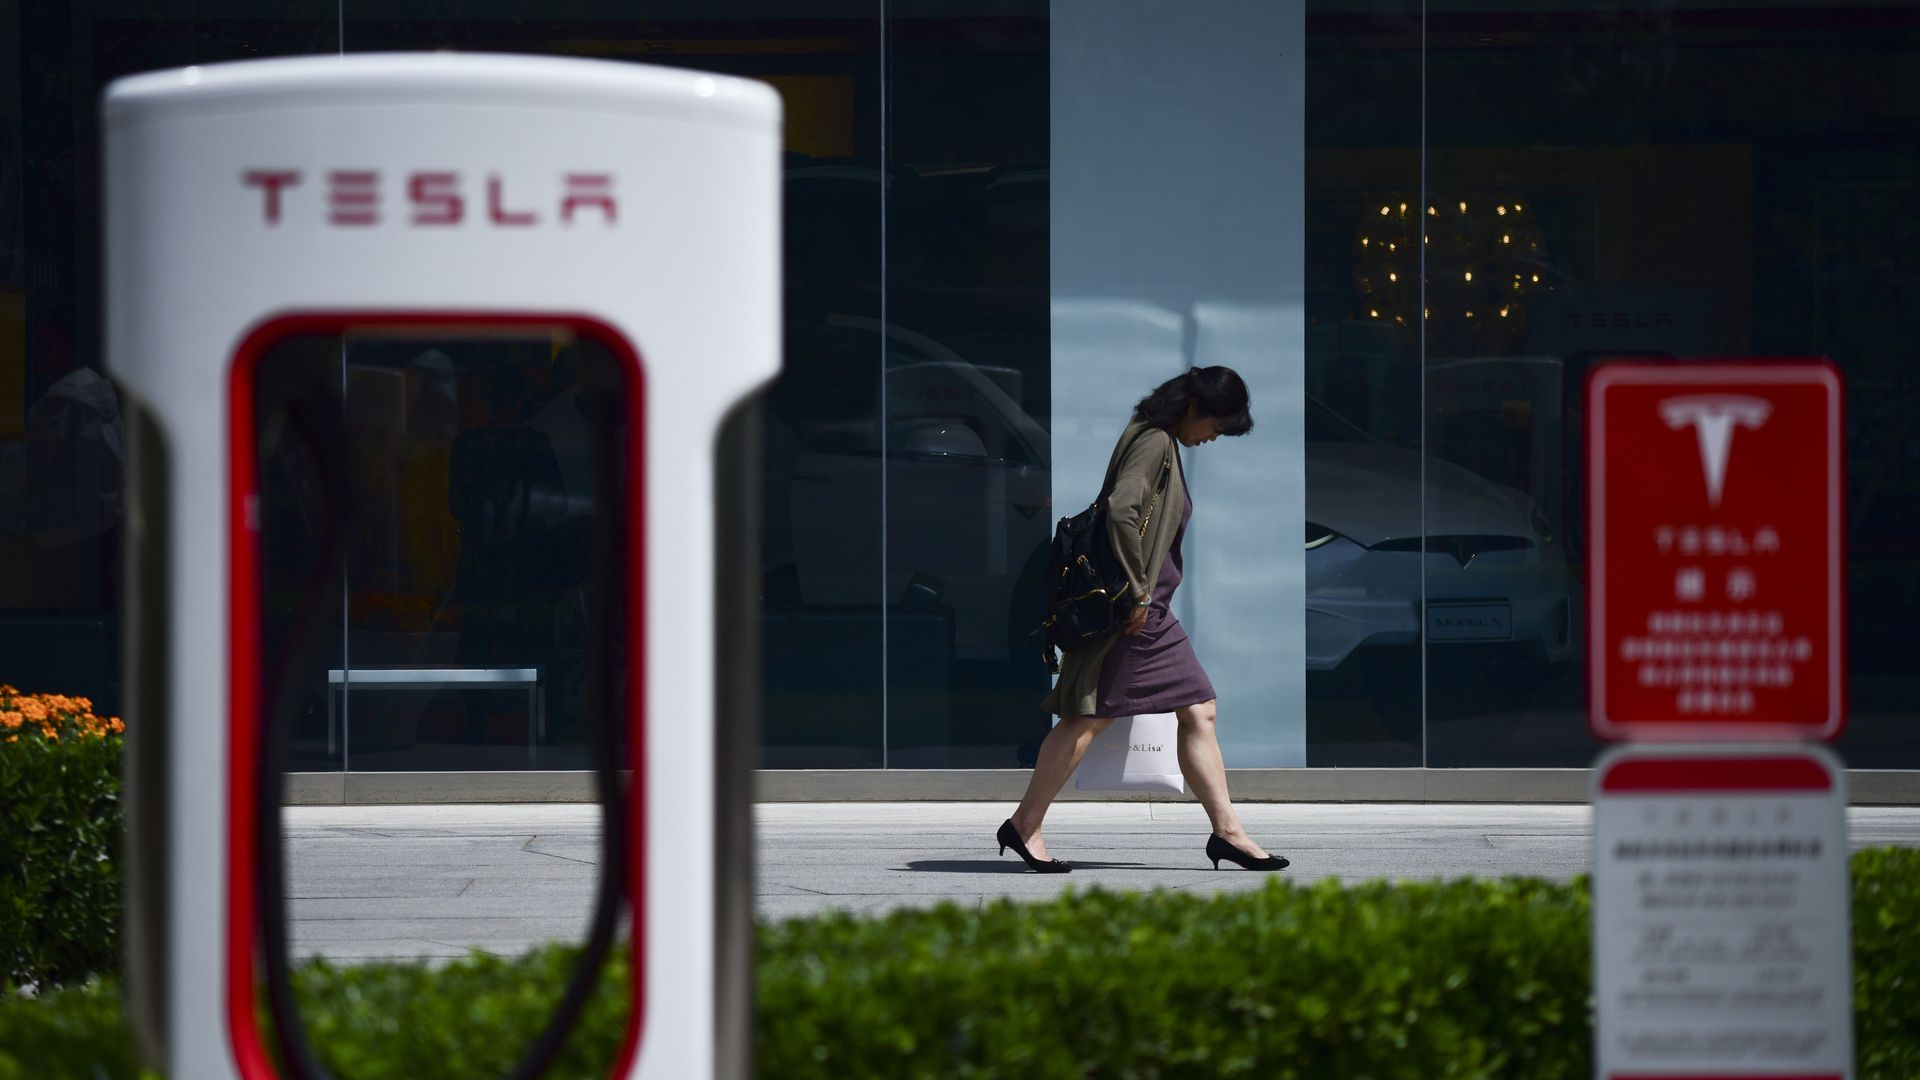 In this image, a woman walks past a Tesla charging port.